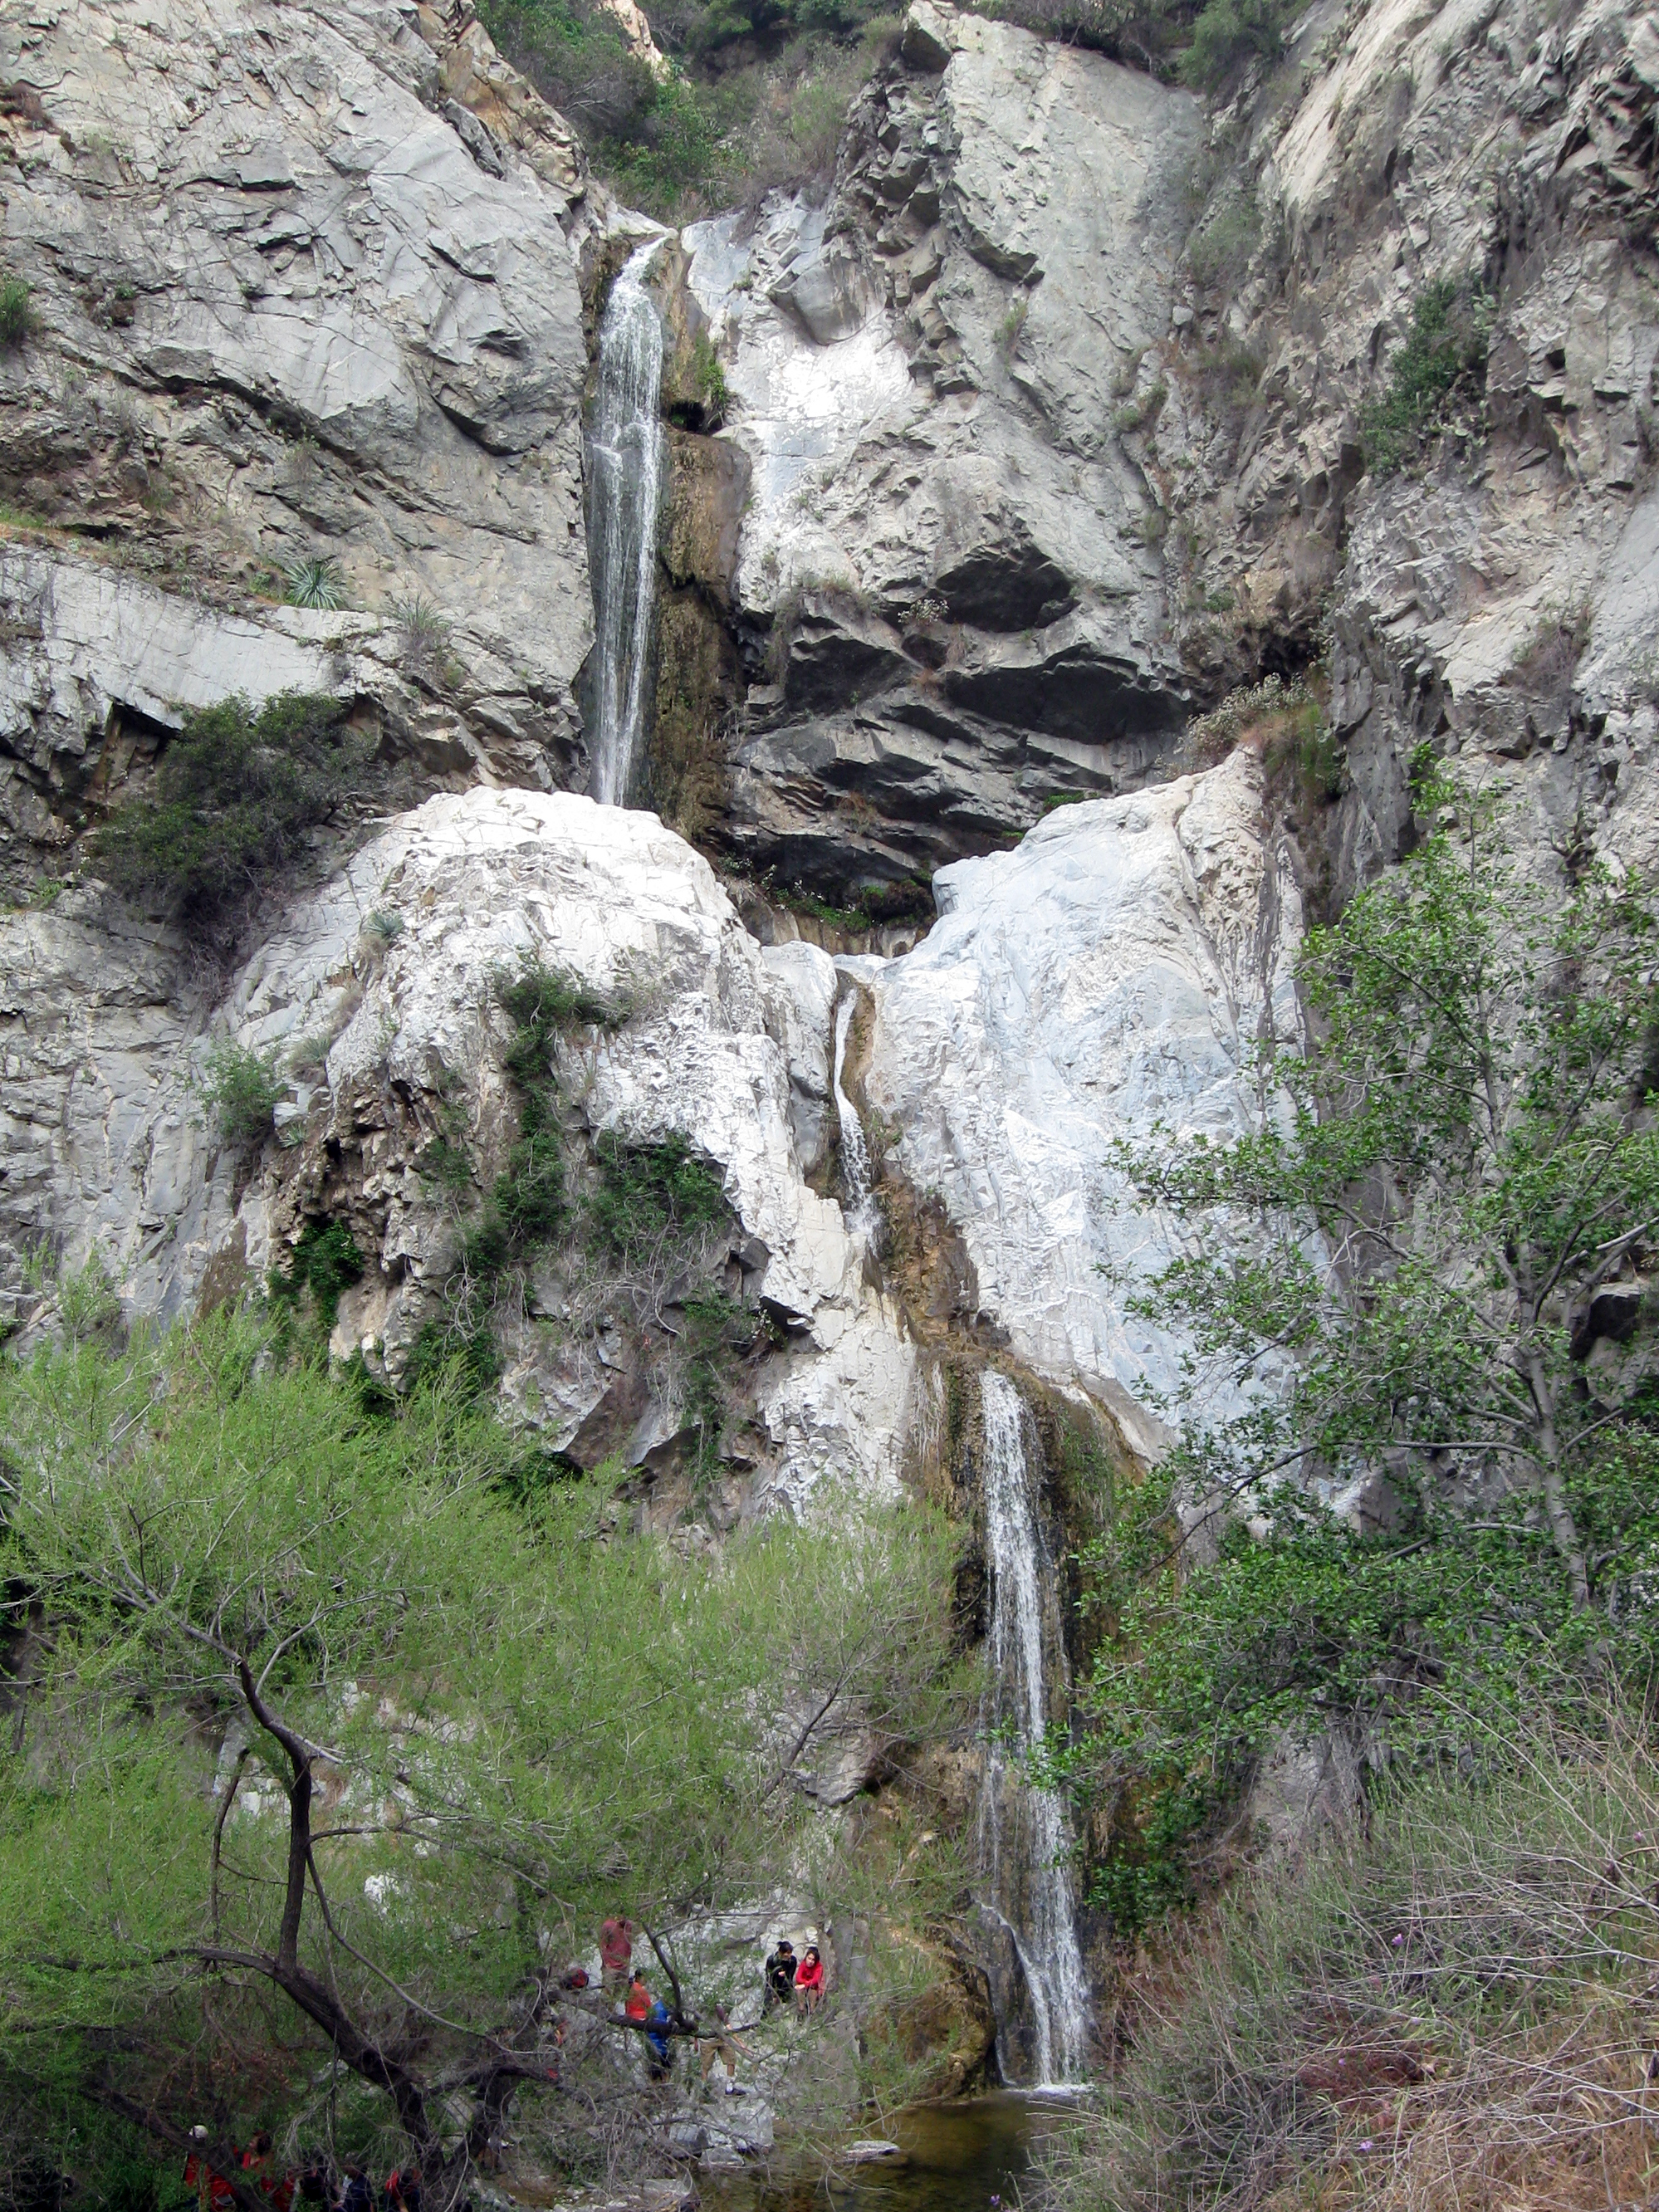 Fish Canyon Falls above Duarte. Photo by Mitch Barrie, via Flickr creative commons.